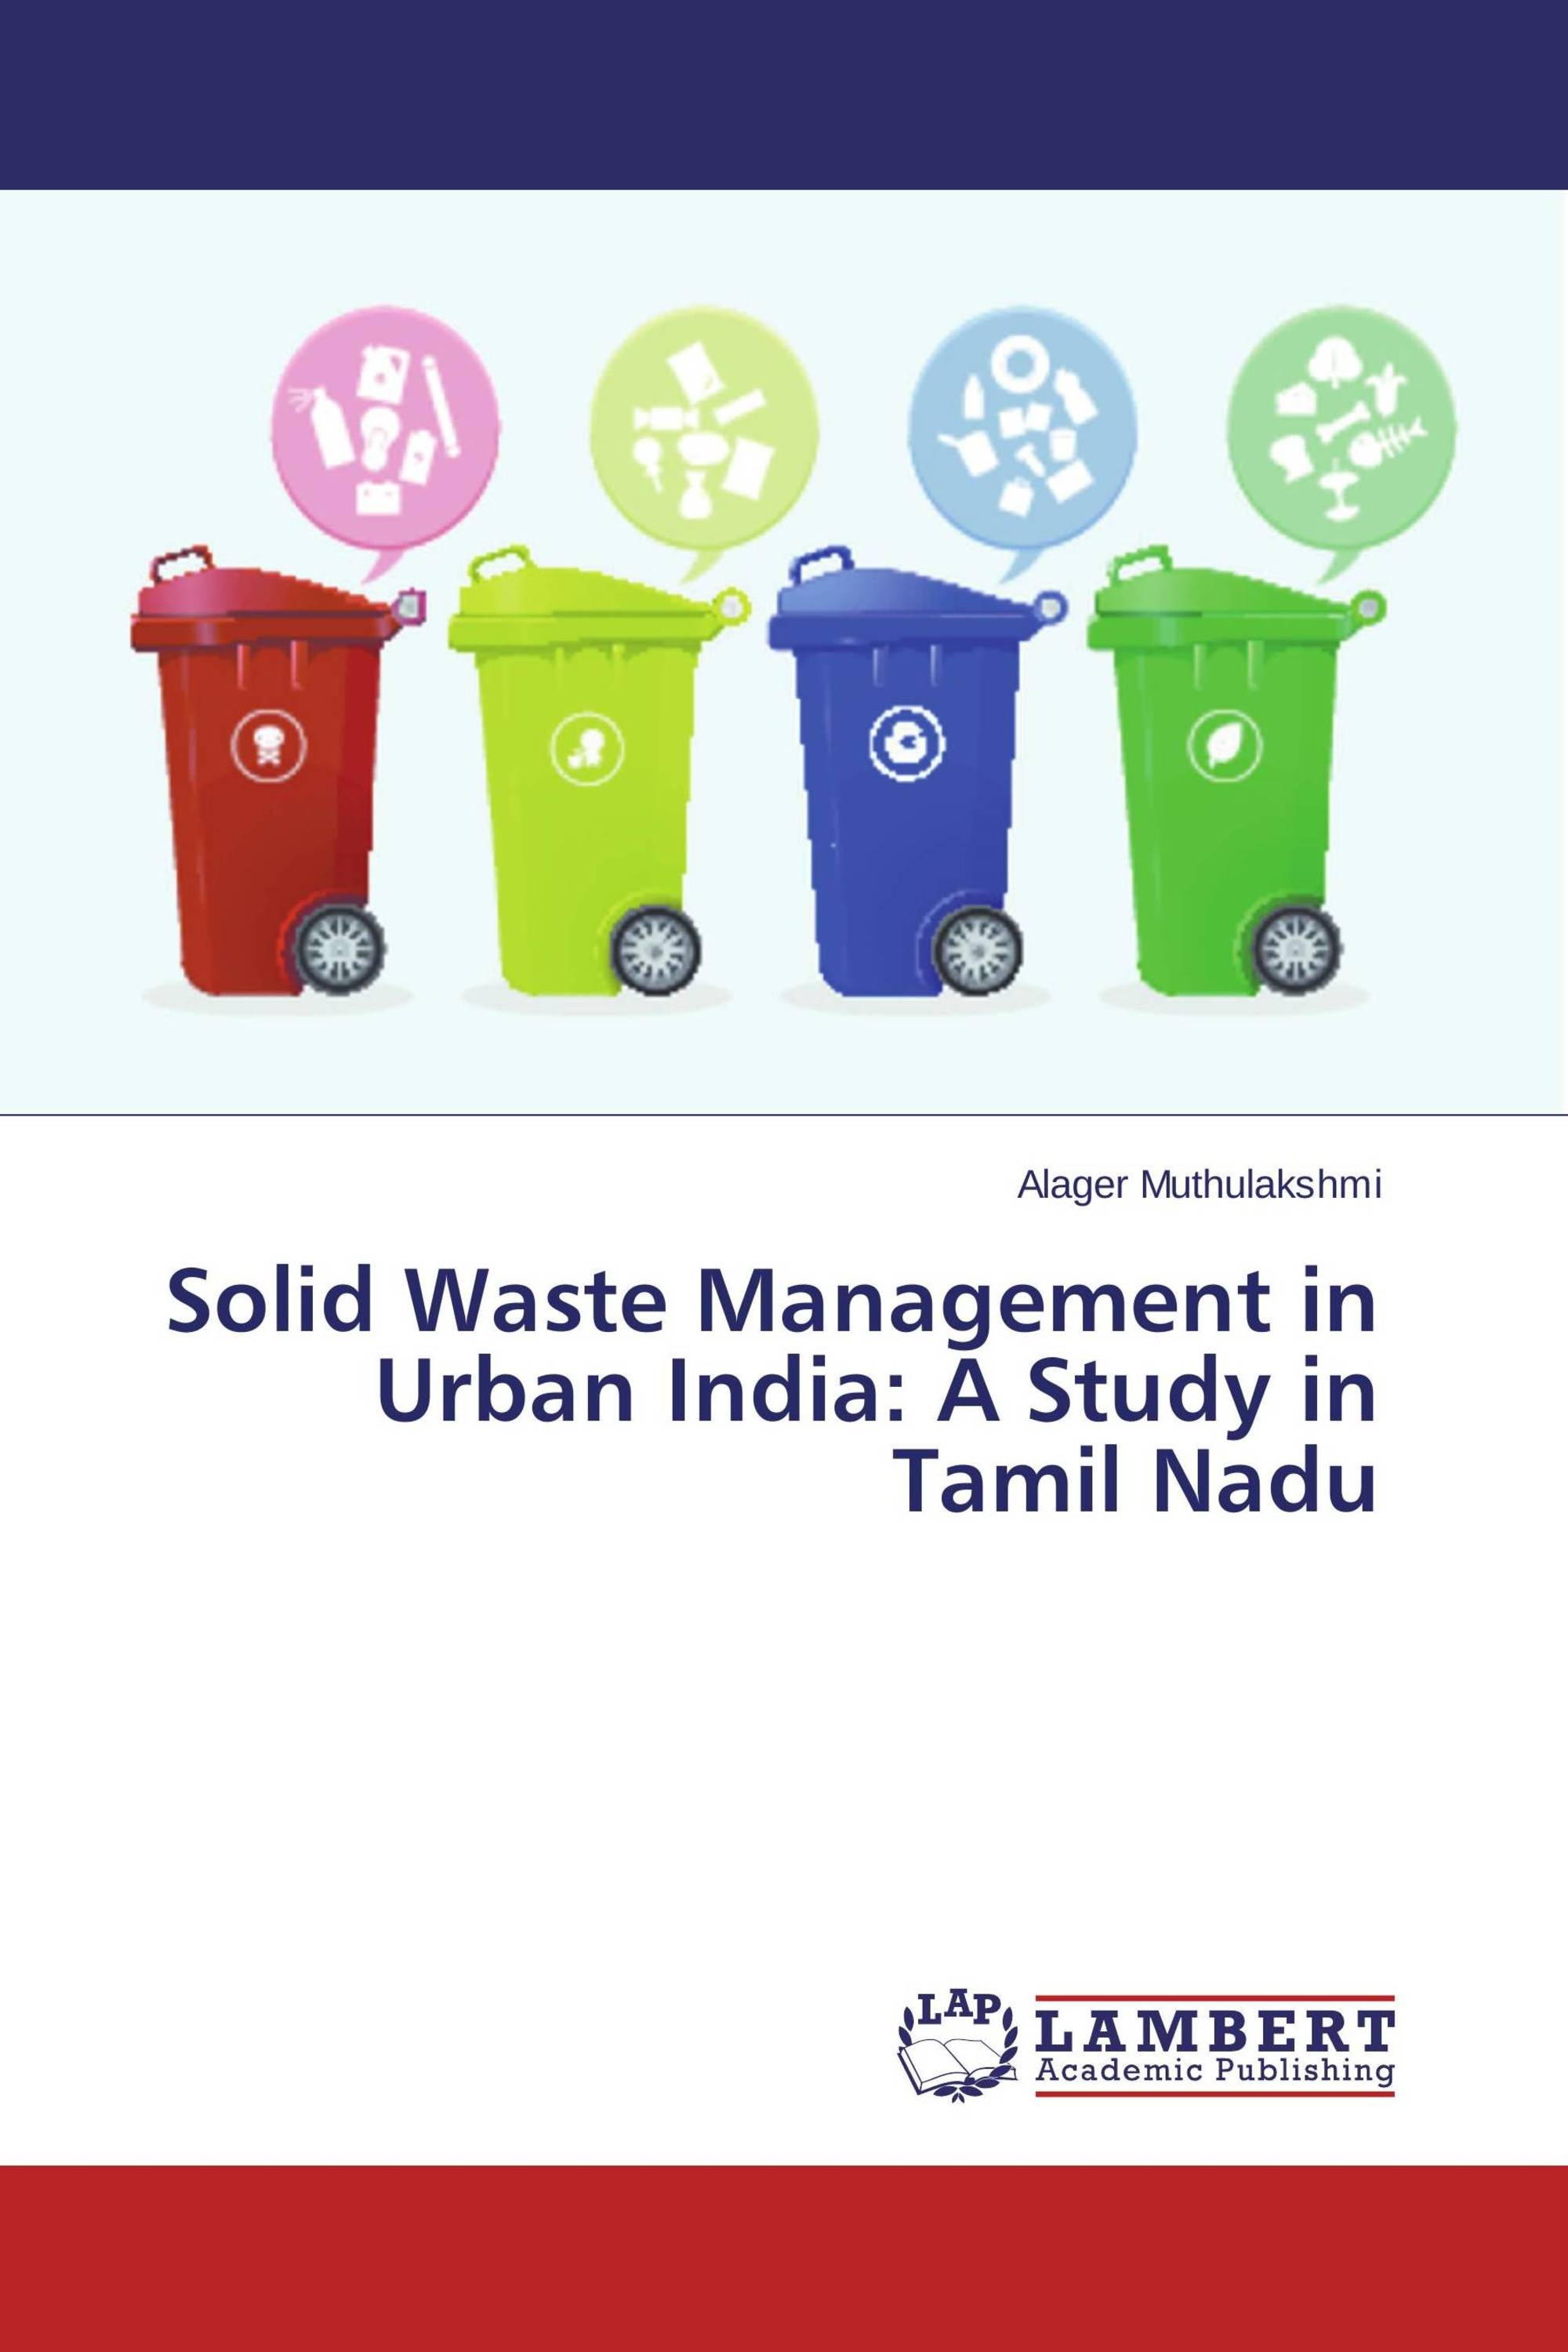 Solid Waste Management in Urban India: A Study in Tamil Nadu